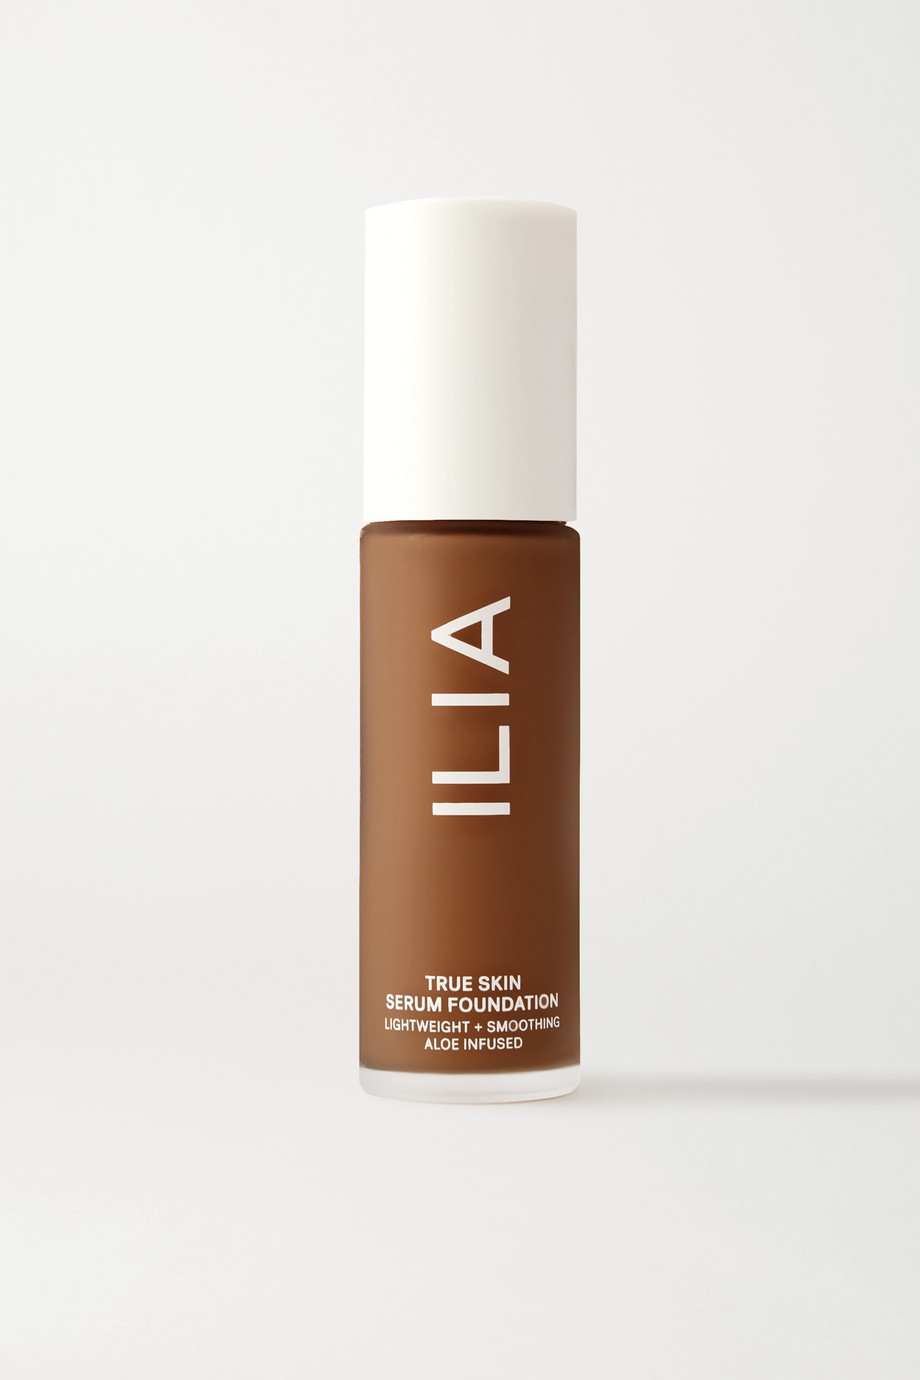 Ilia True Skin Serum Foundation - Macquarie SF13, 30ml